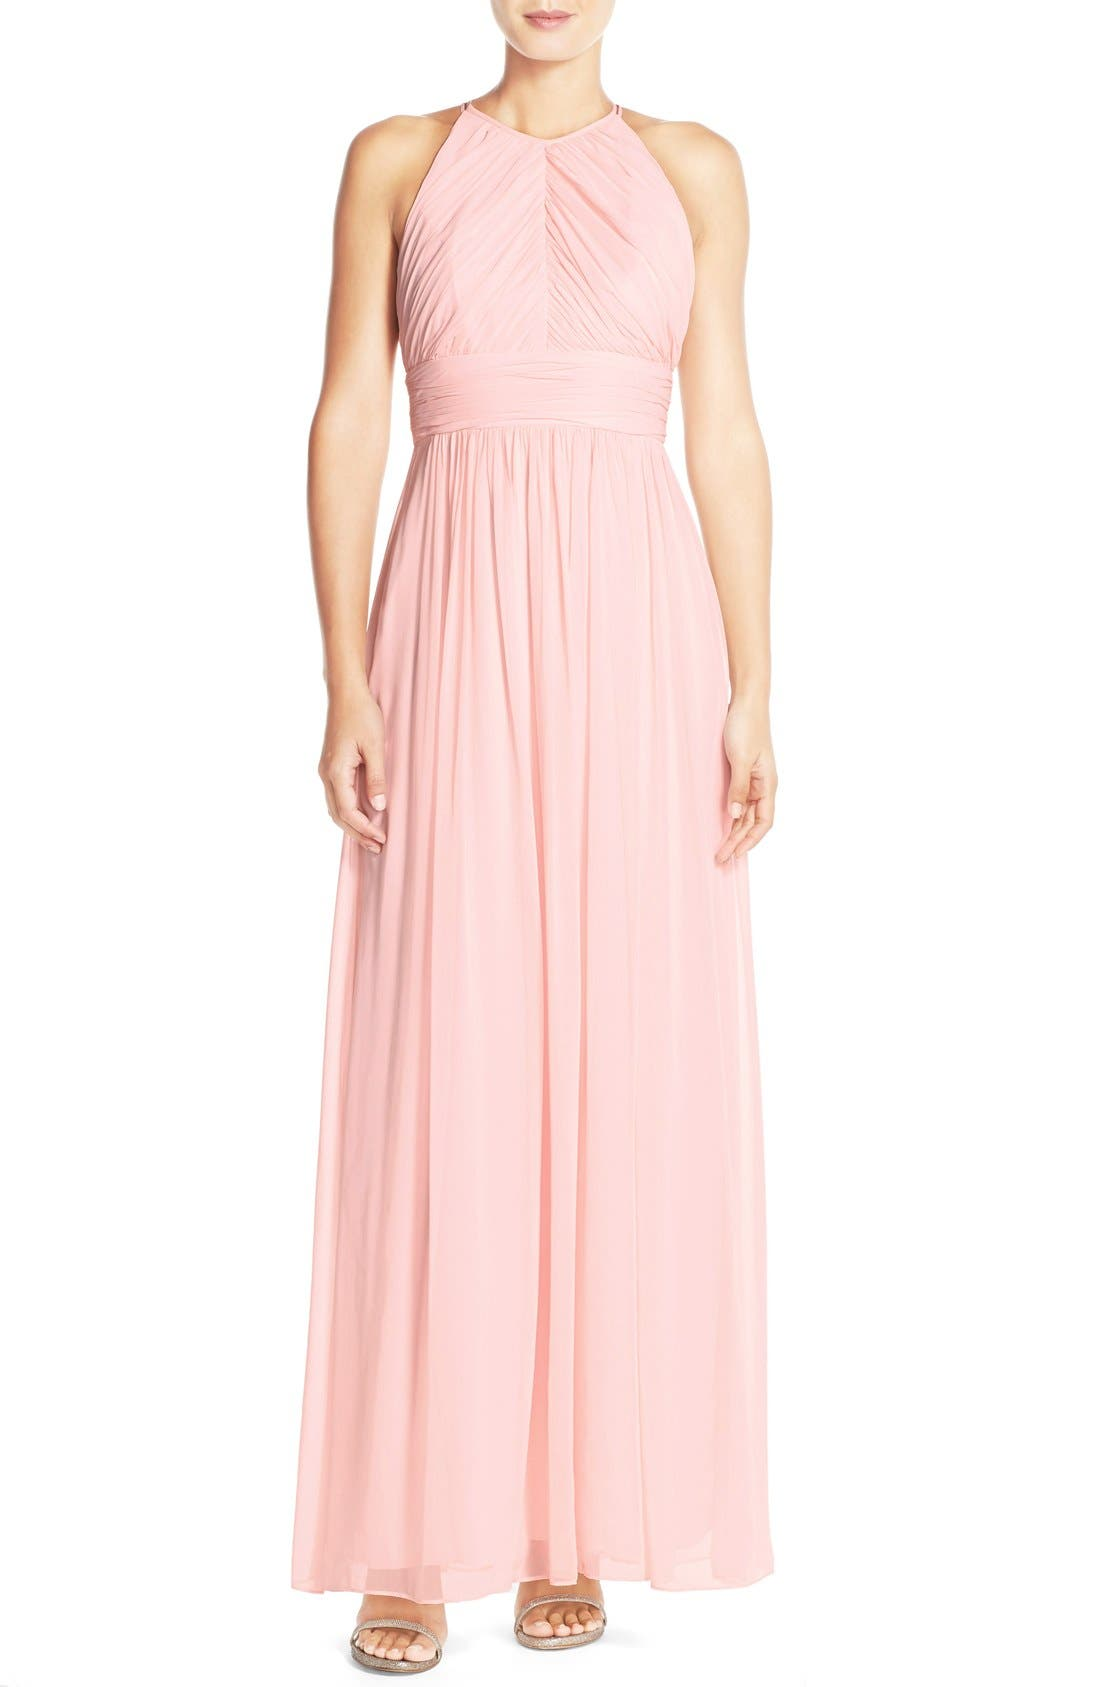 Dessy Collection Ruched Chiffon Open Back Halter Gown,                             Main thumbnail 1, color,                             686